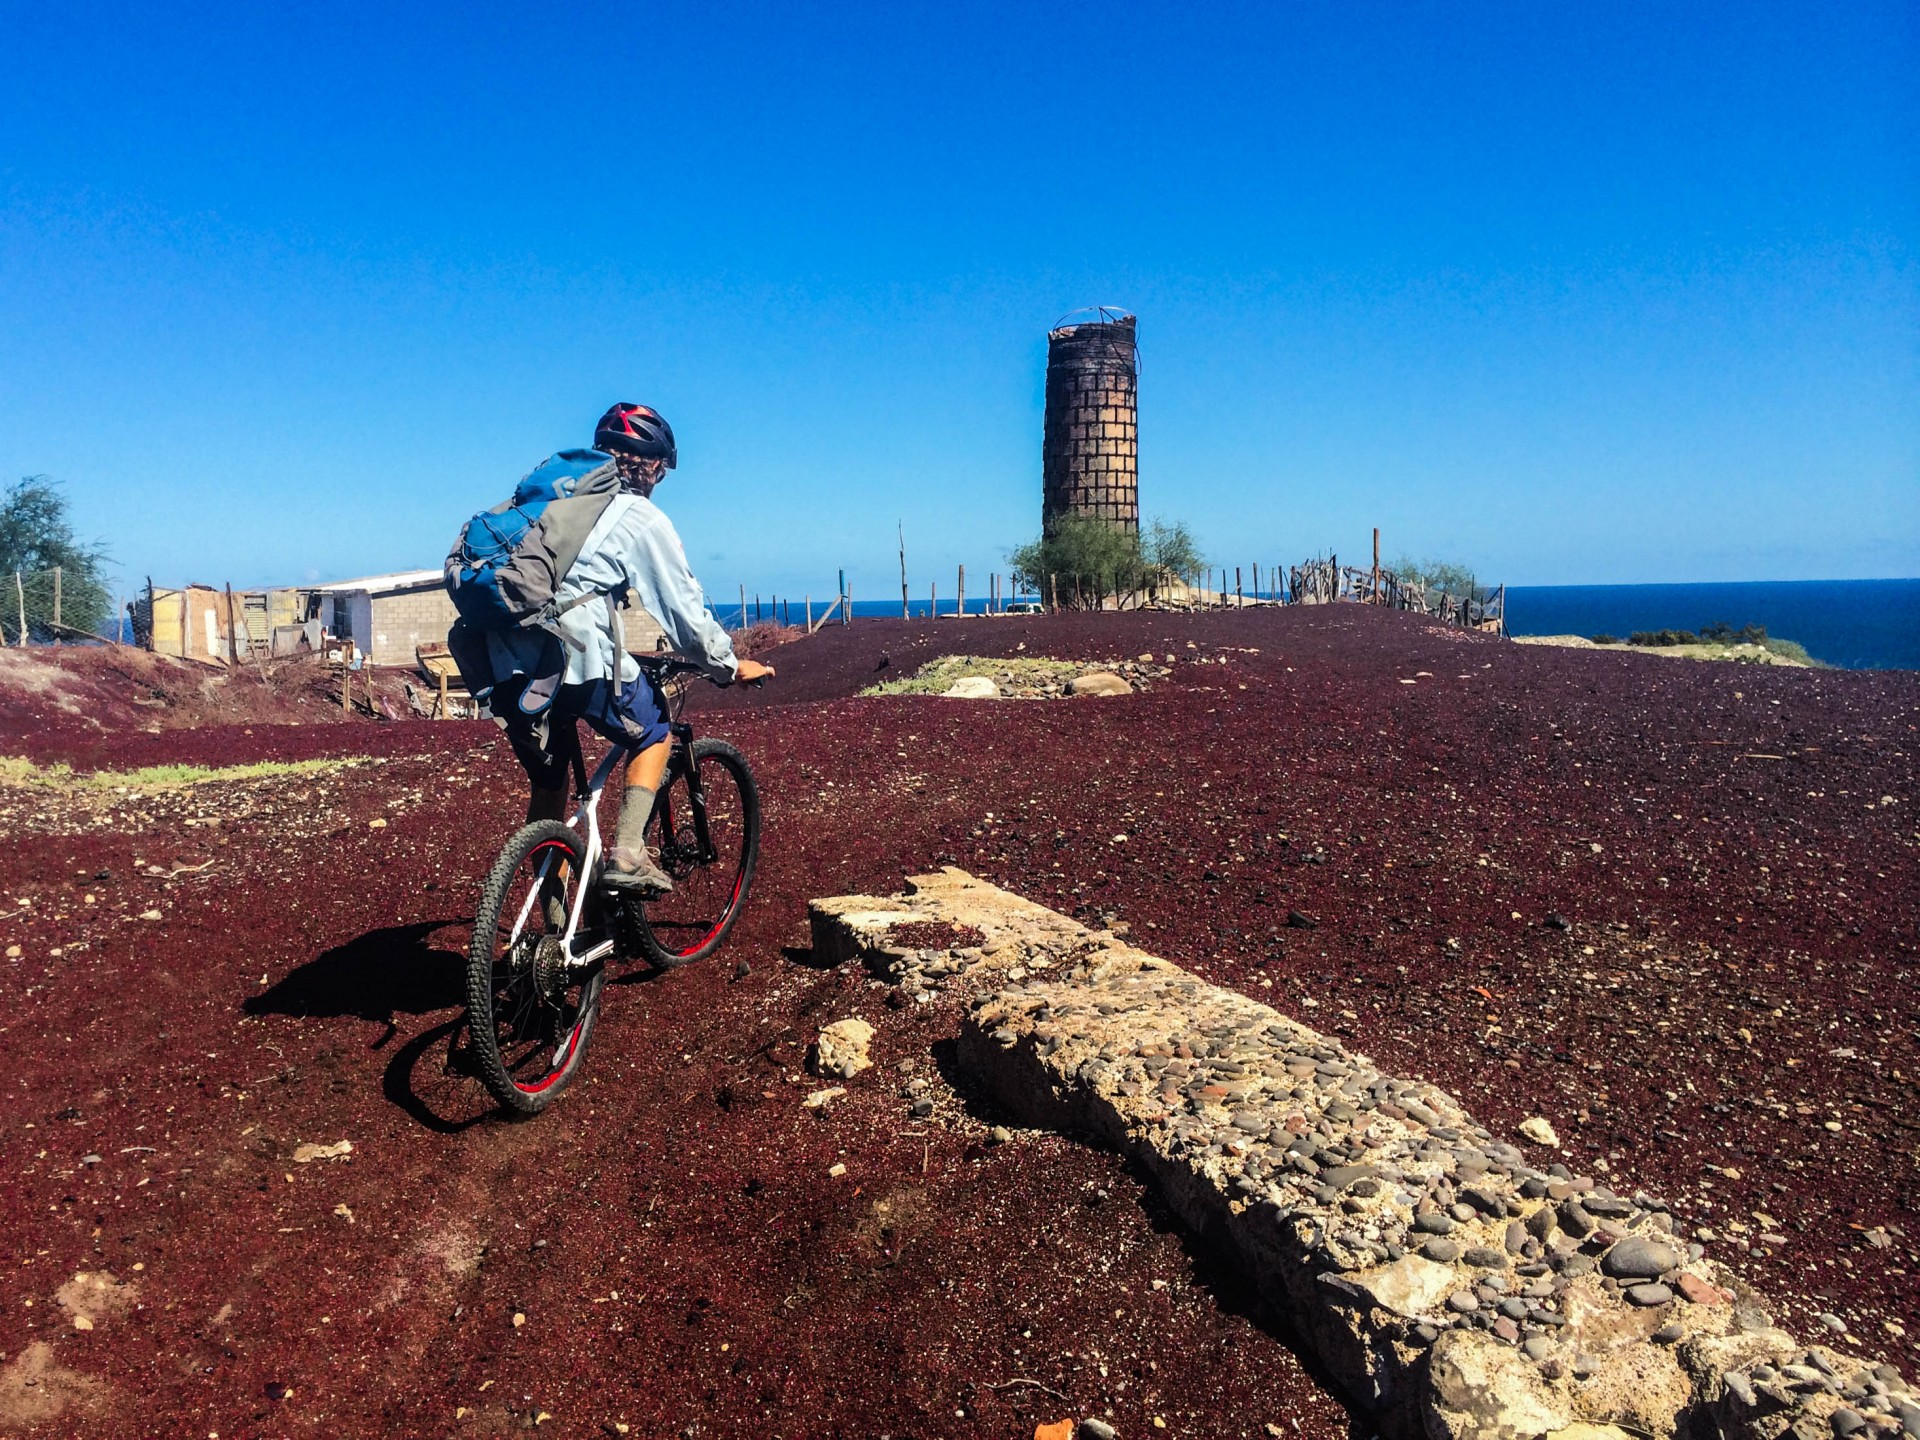 Josh rides out onto the top of the tailings pile, with the brick smokestack from the mine smelter in the background.